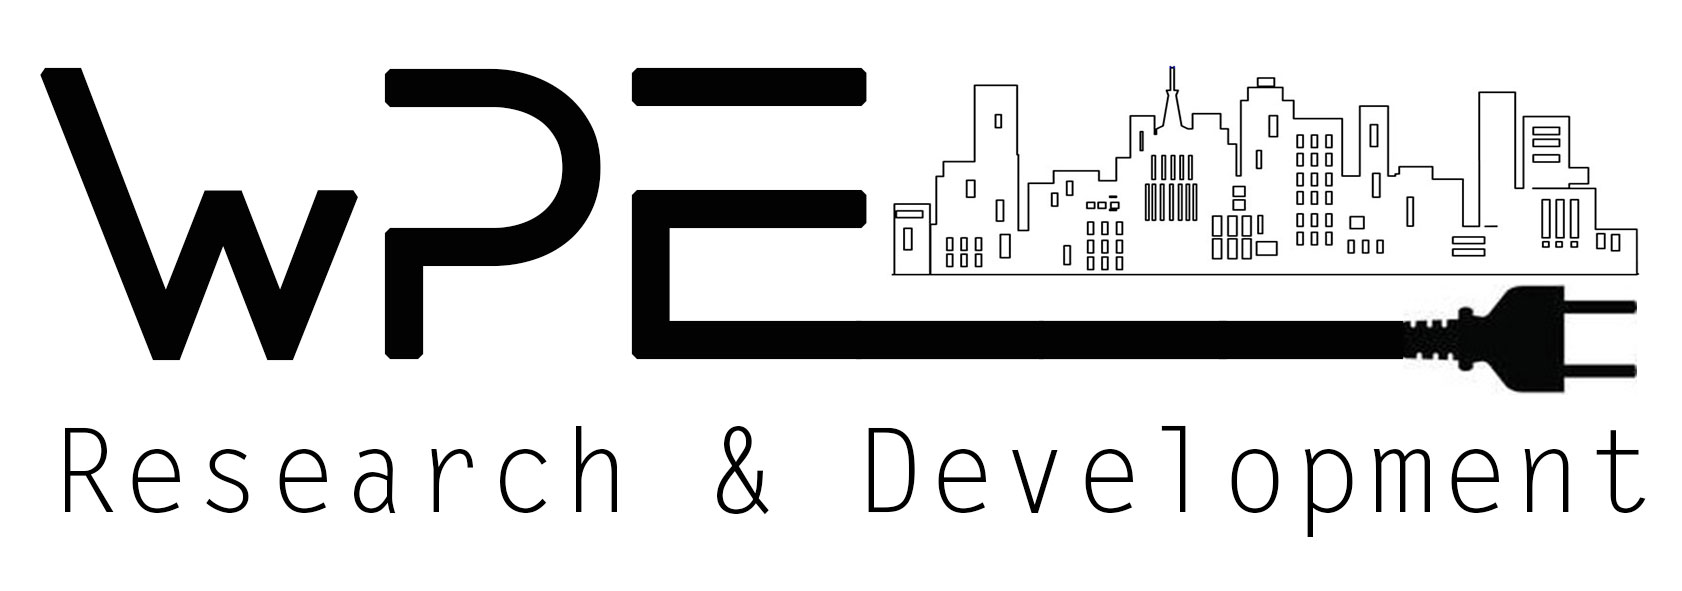 WPE Research & Development